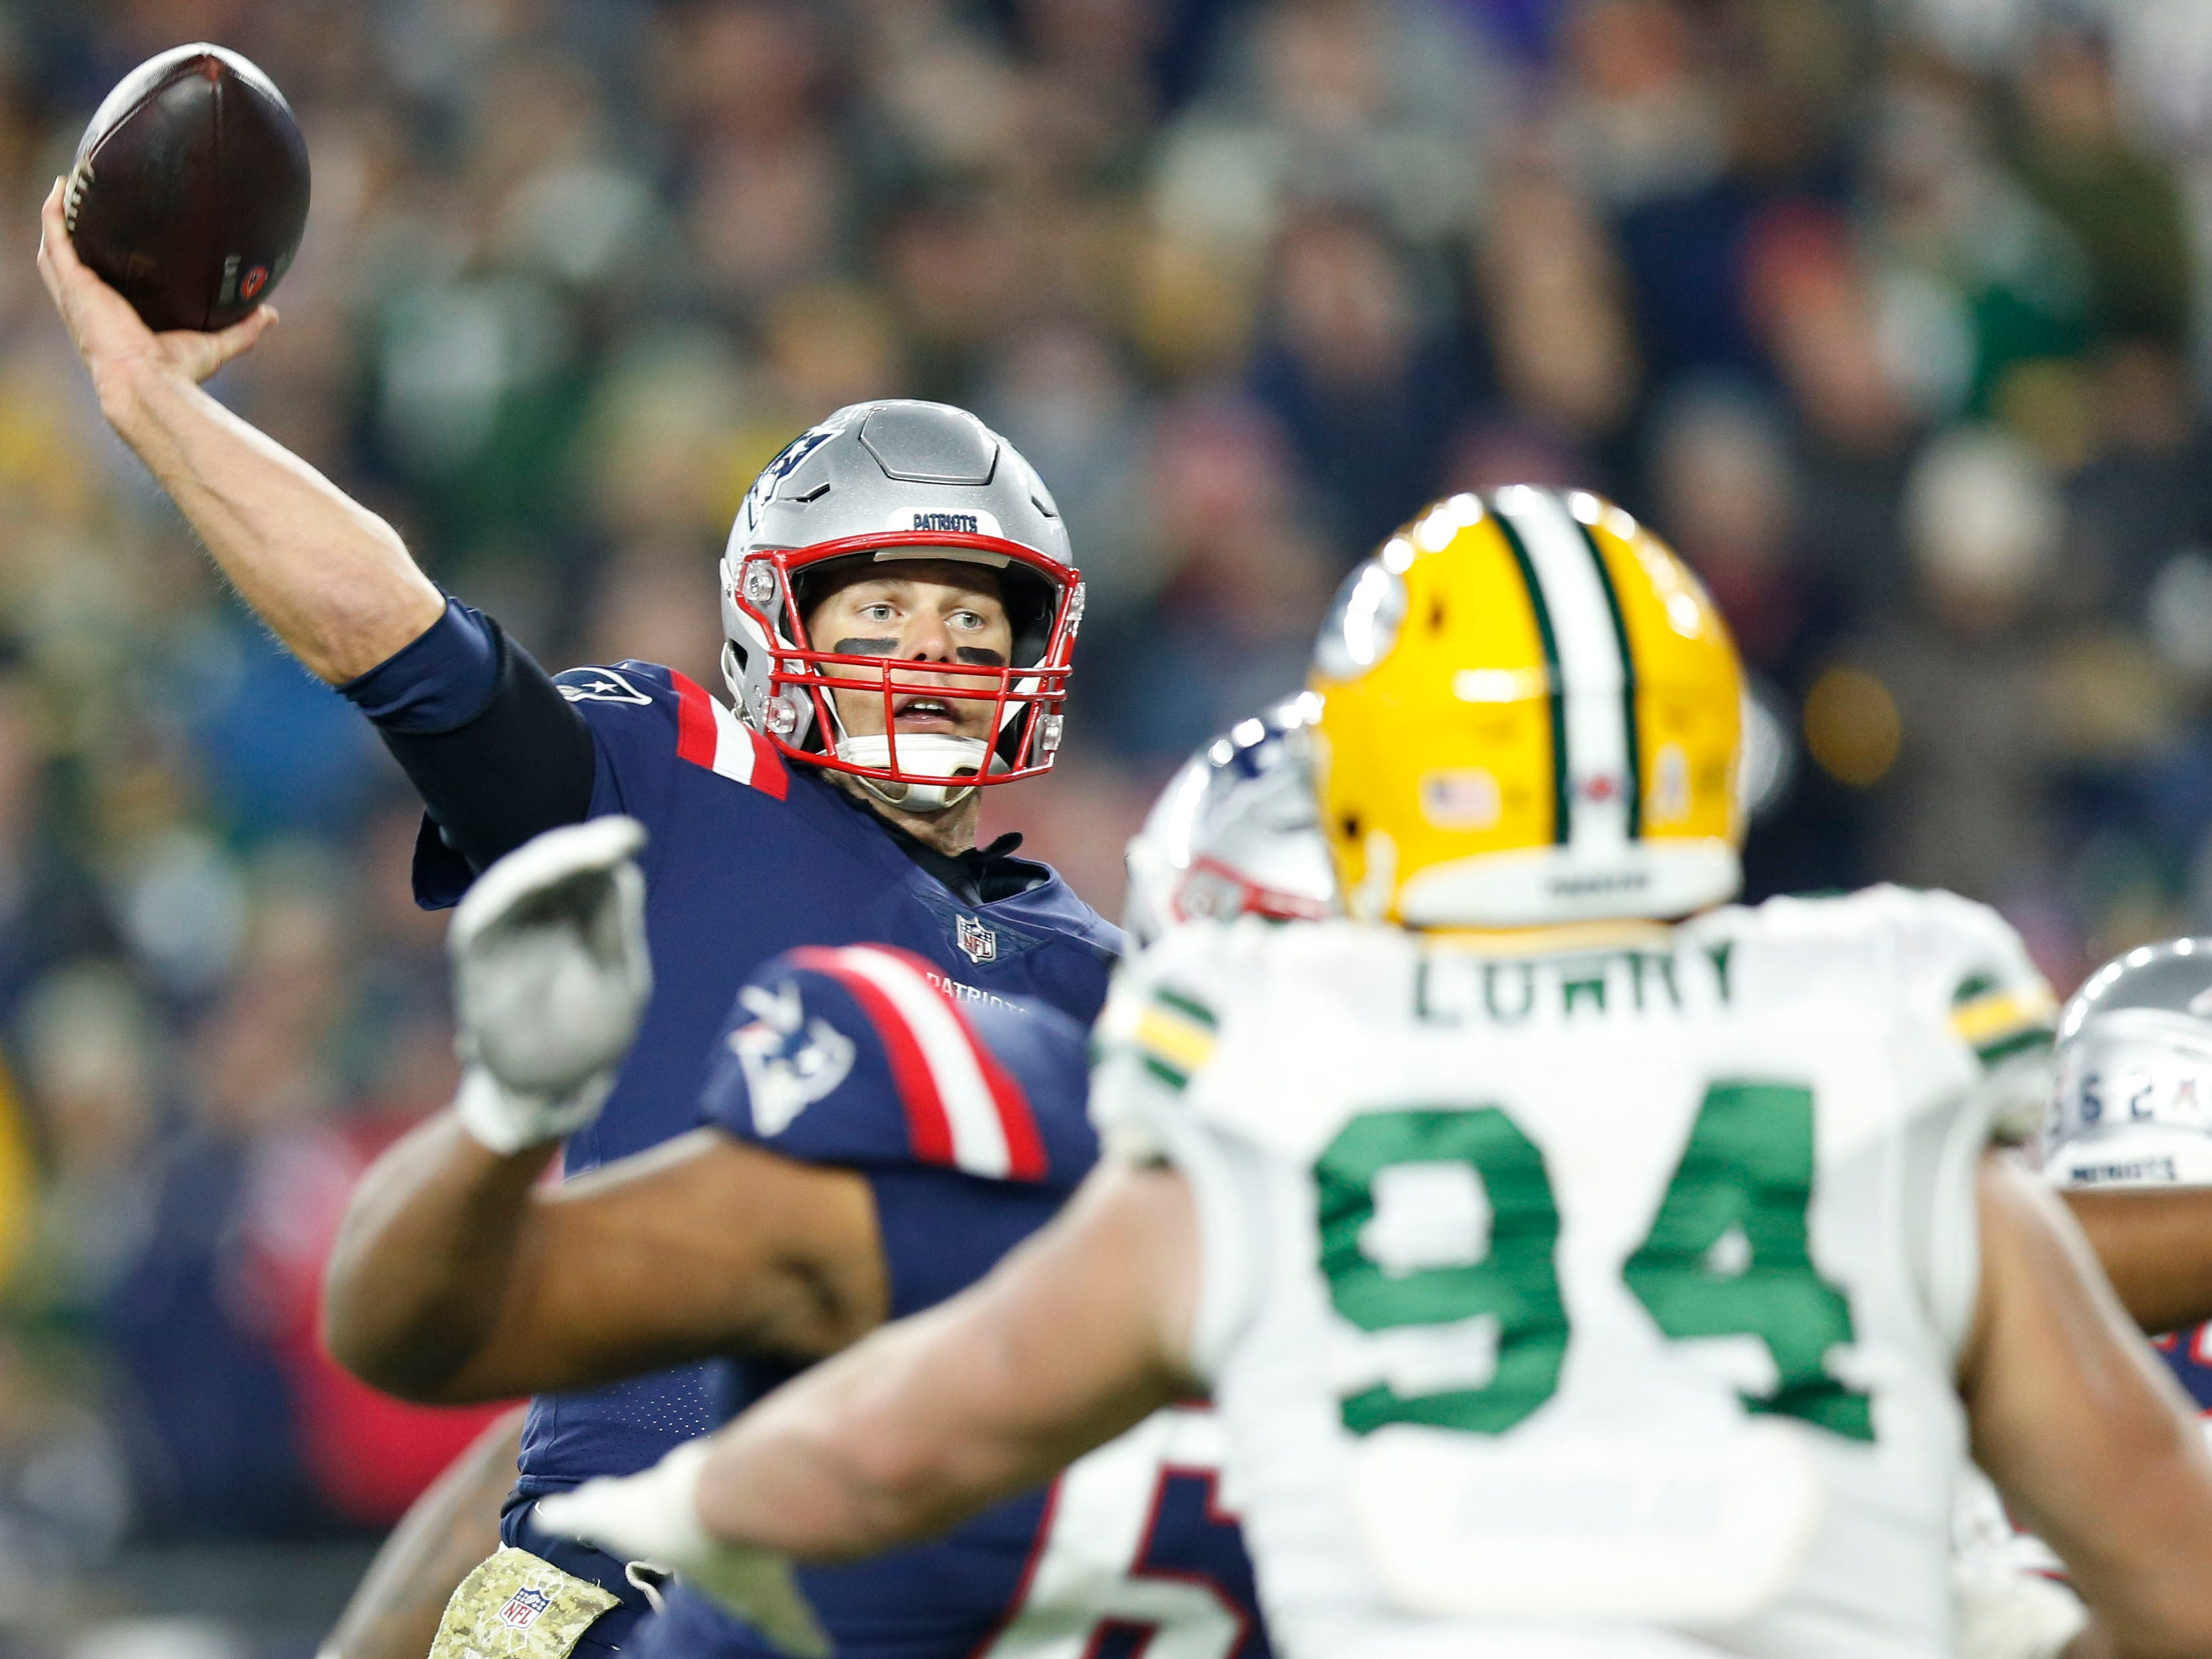 New England Patriots quarterback Tom Brady makes a pass during the third quarter against the Green Bay Packers at Gillette Stadium.